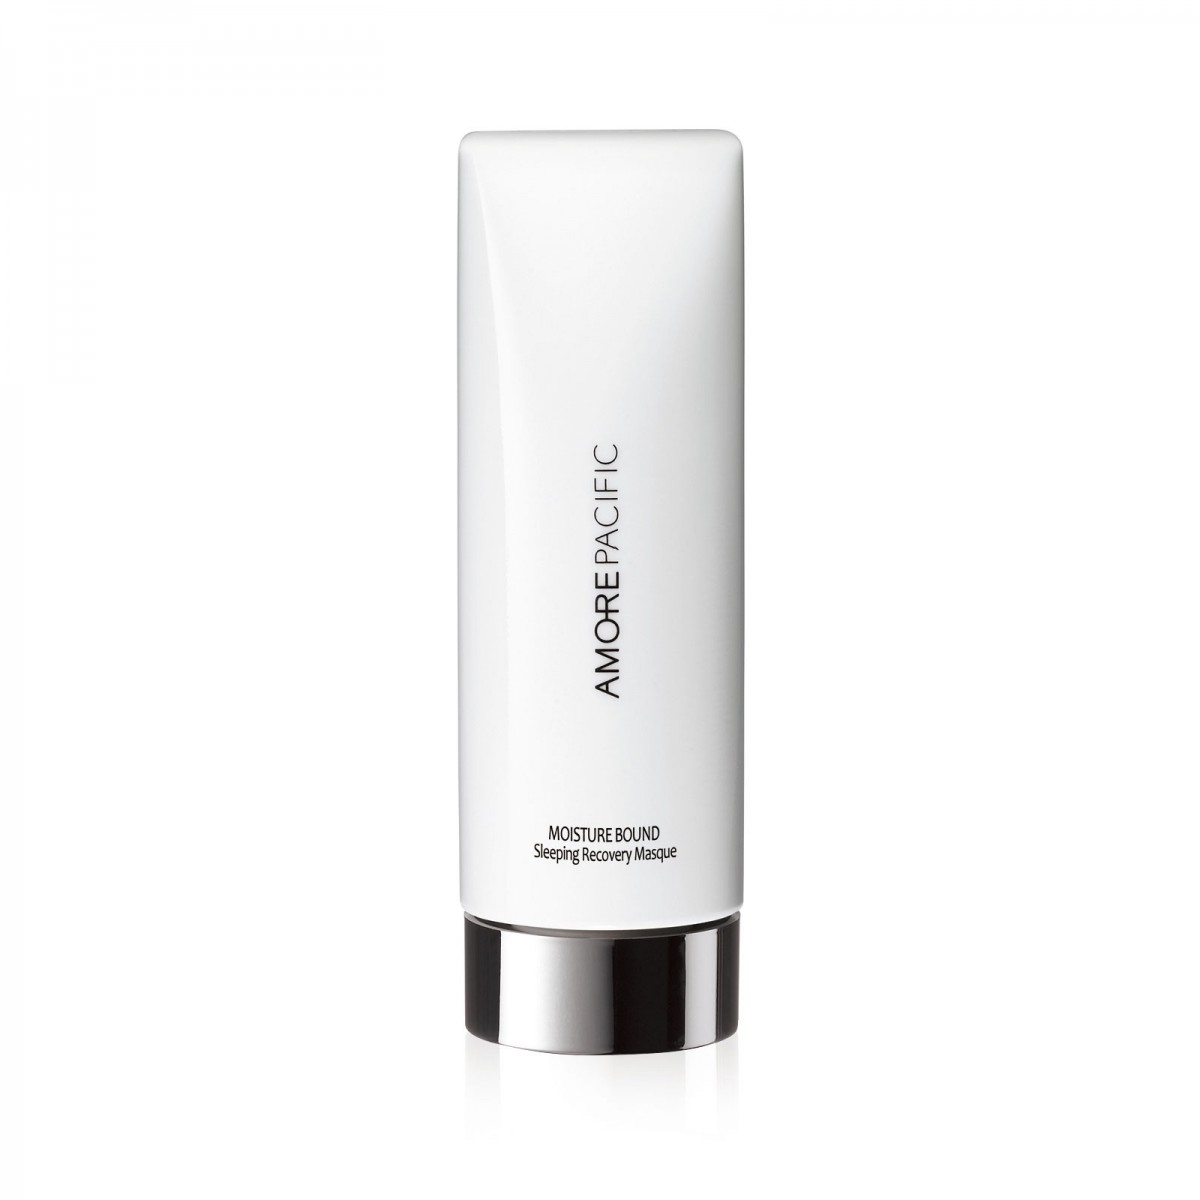 AmorePacific_moisture-bound-sleeping-recovery-masque copy